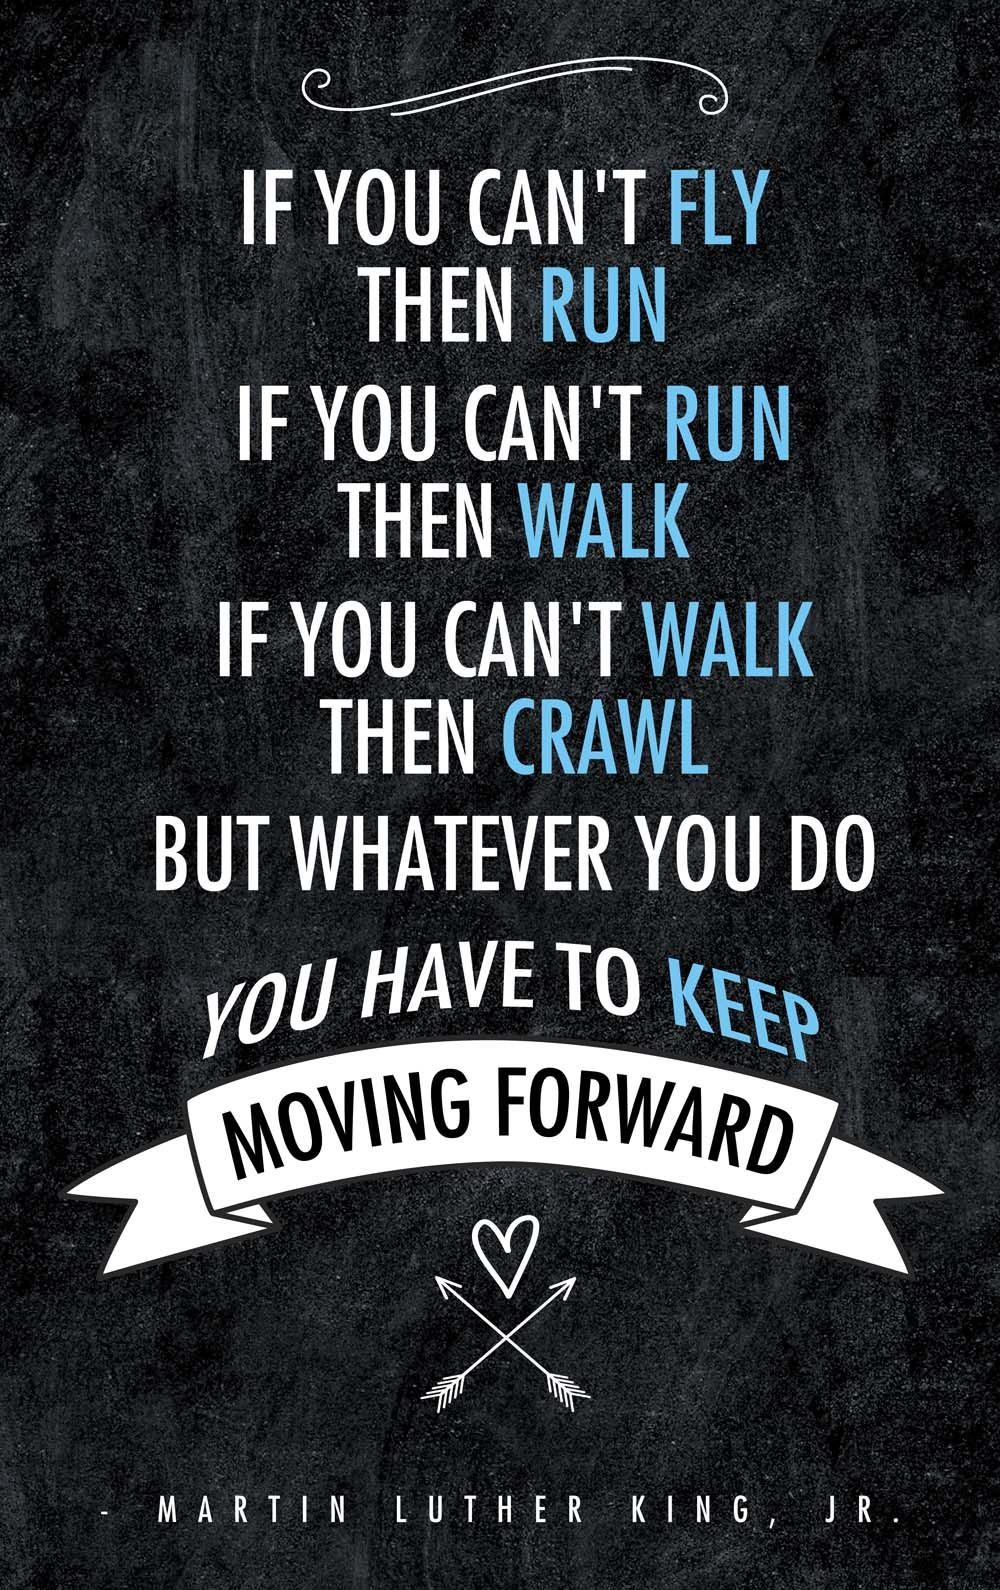 Moving Forward Quotes Fascinating Keep Moving Forward #quote #martinlutherking  Inspiration Quotes